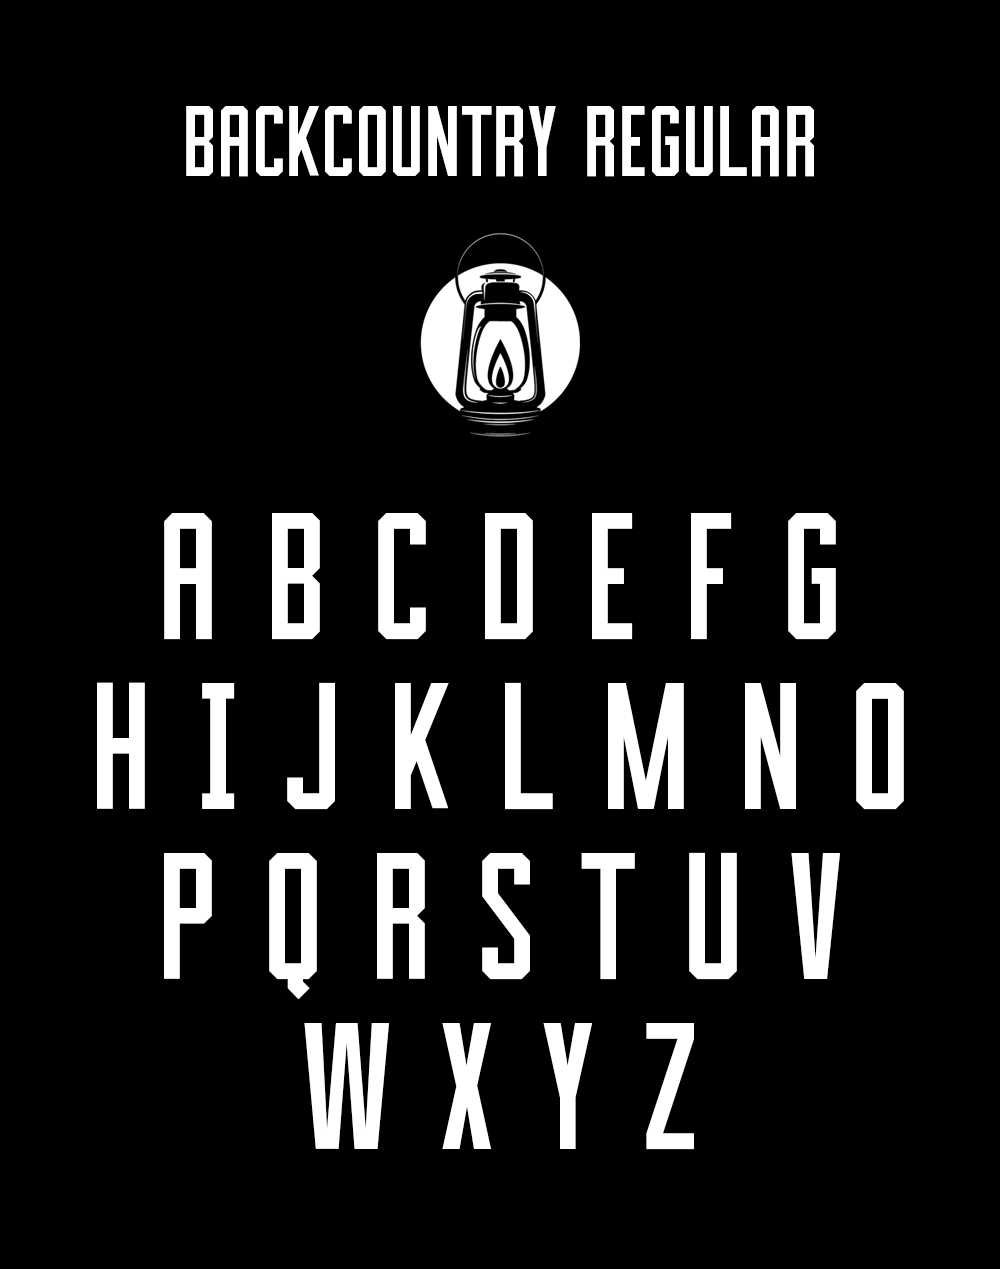 Custom Typeface Design for Backcountry Brewery